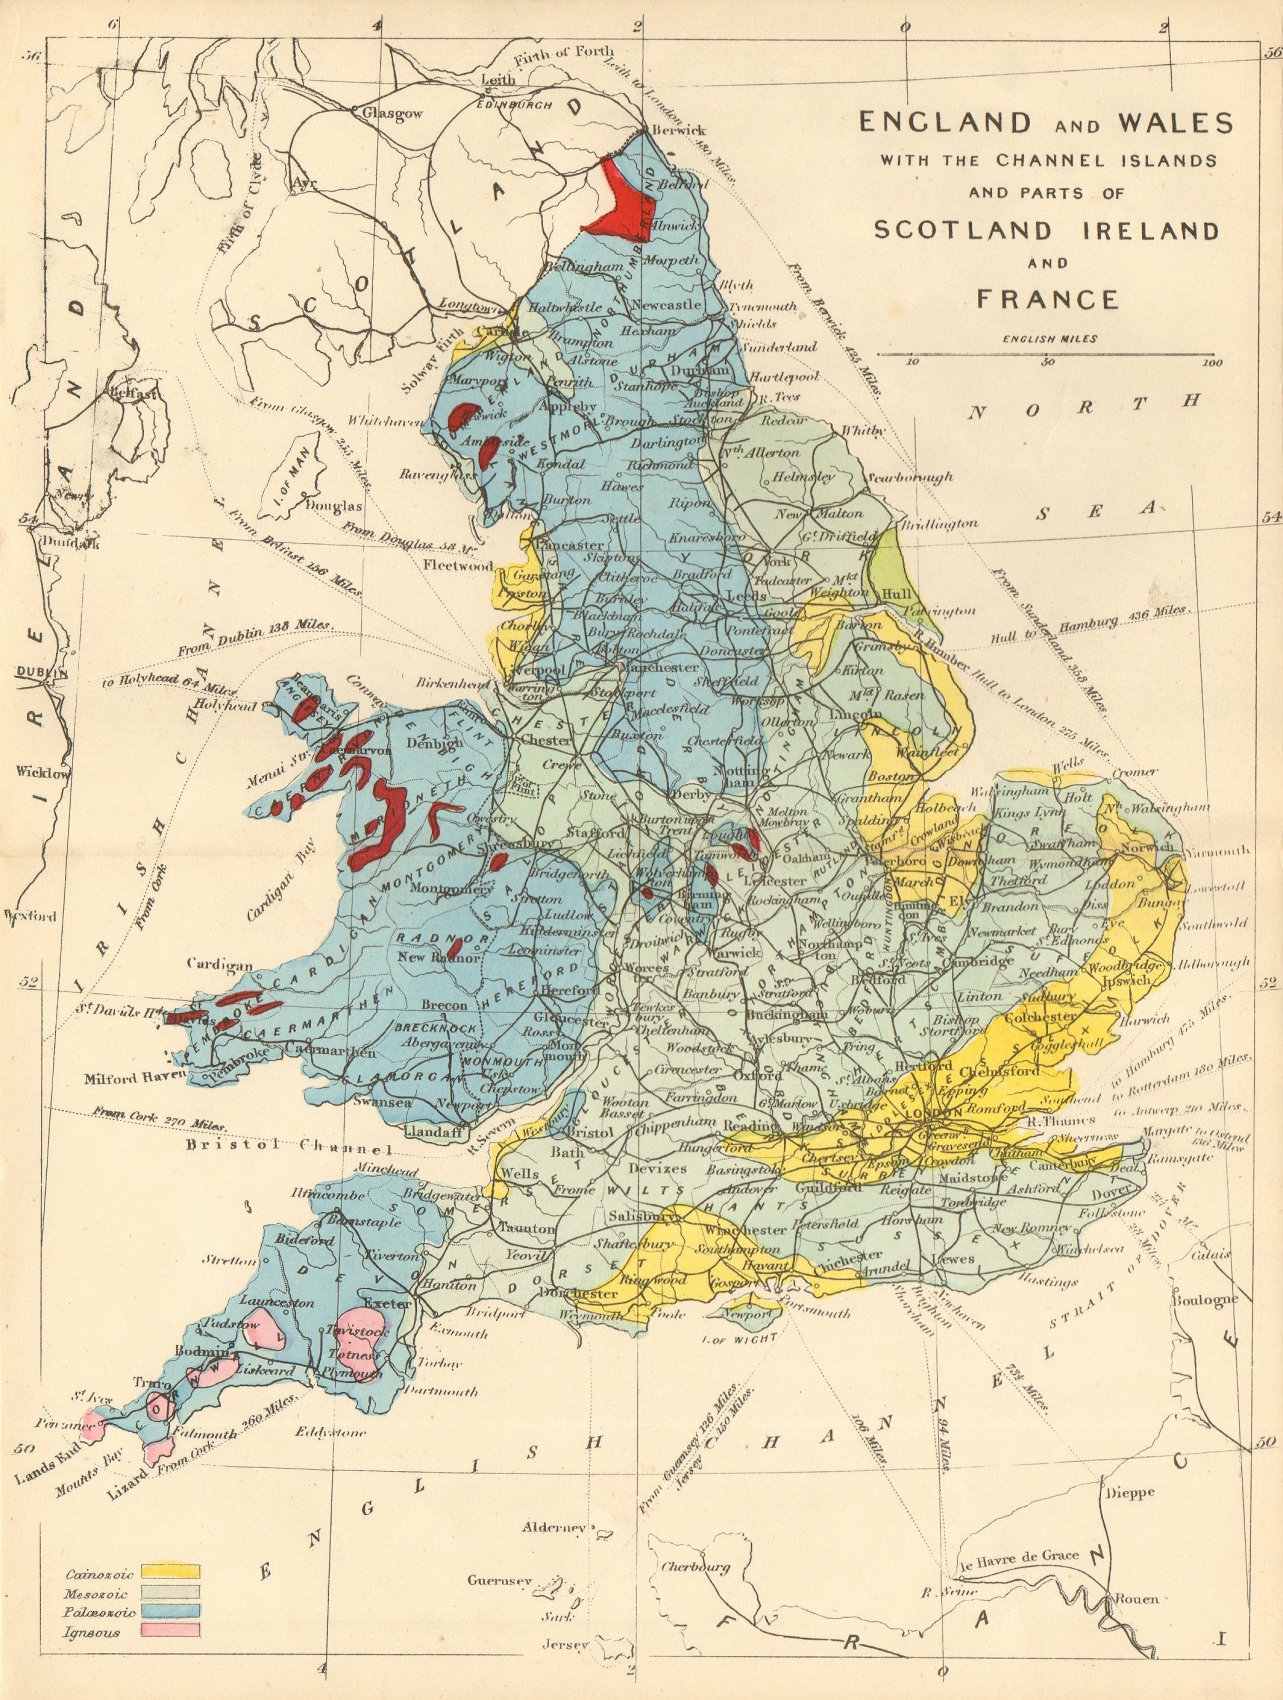 ENGLAND & WALES antique geological map by James Reynolds 1864